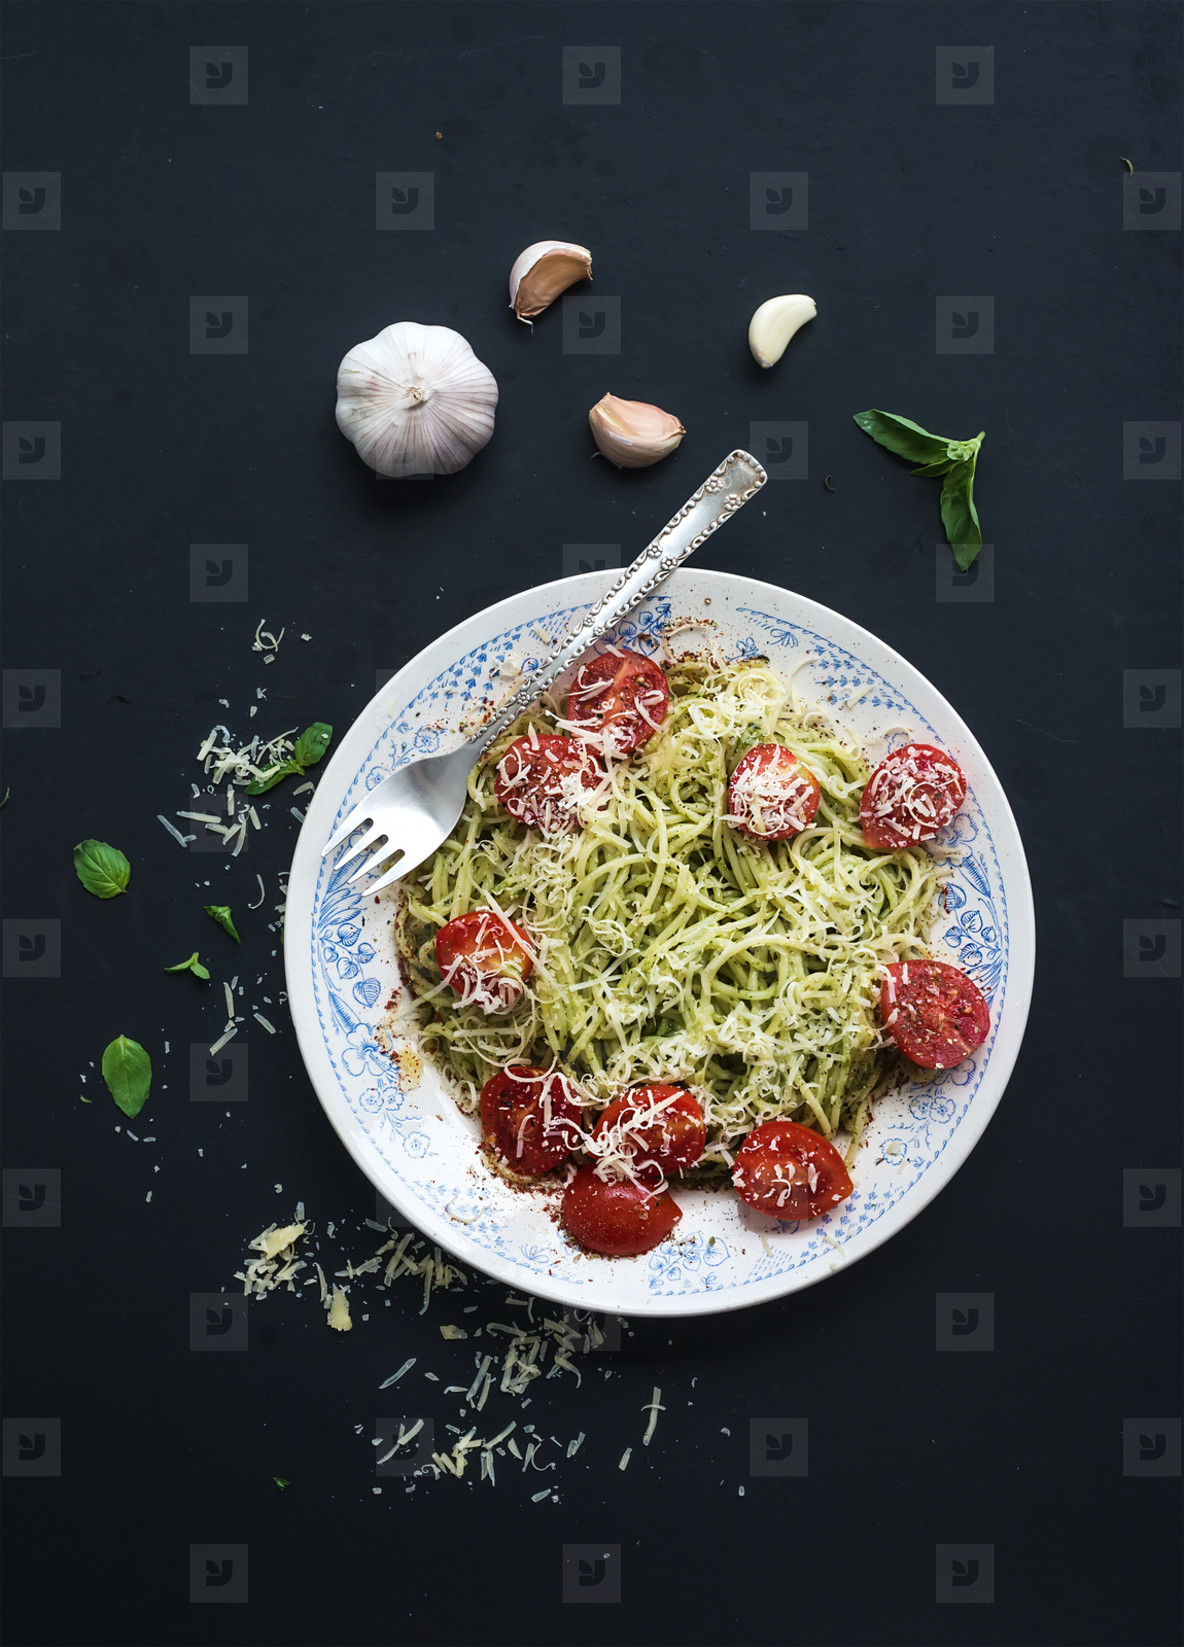 Pasta spaghetti with pesto sauce  basil  garlic  baked cherry tomatoes on rustic dark table  top view